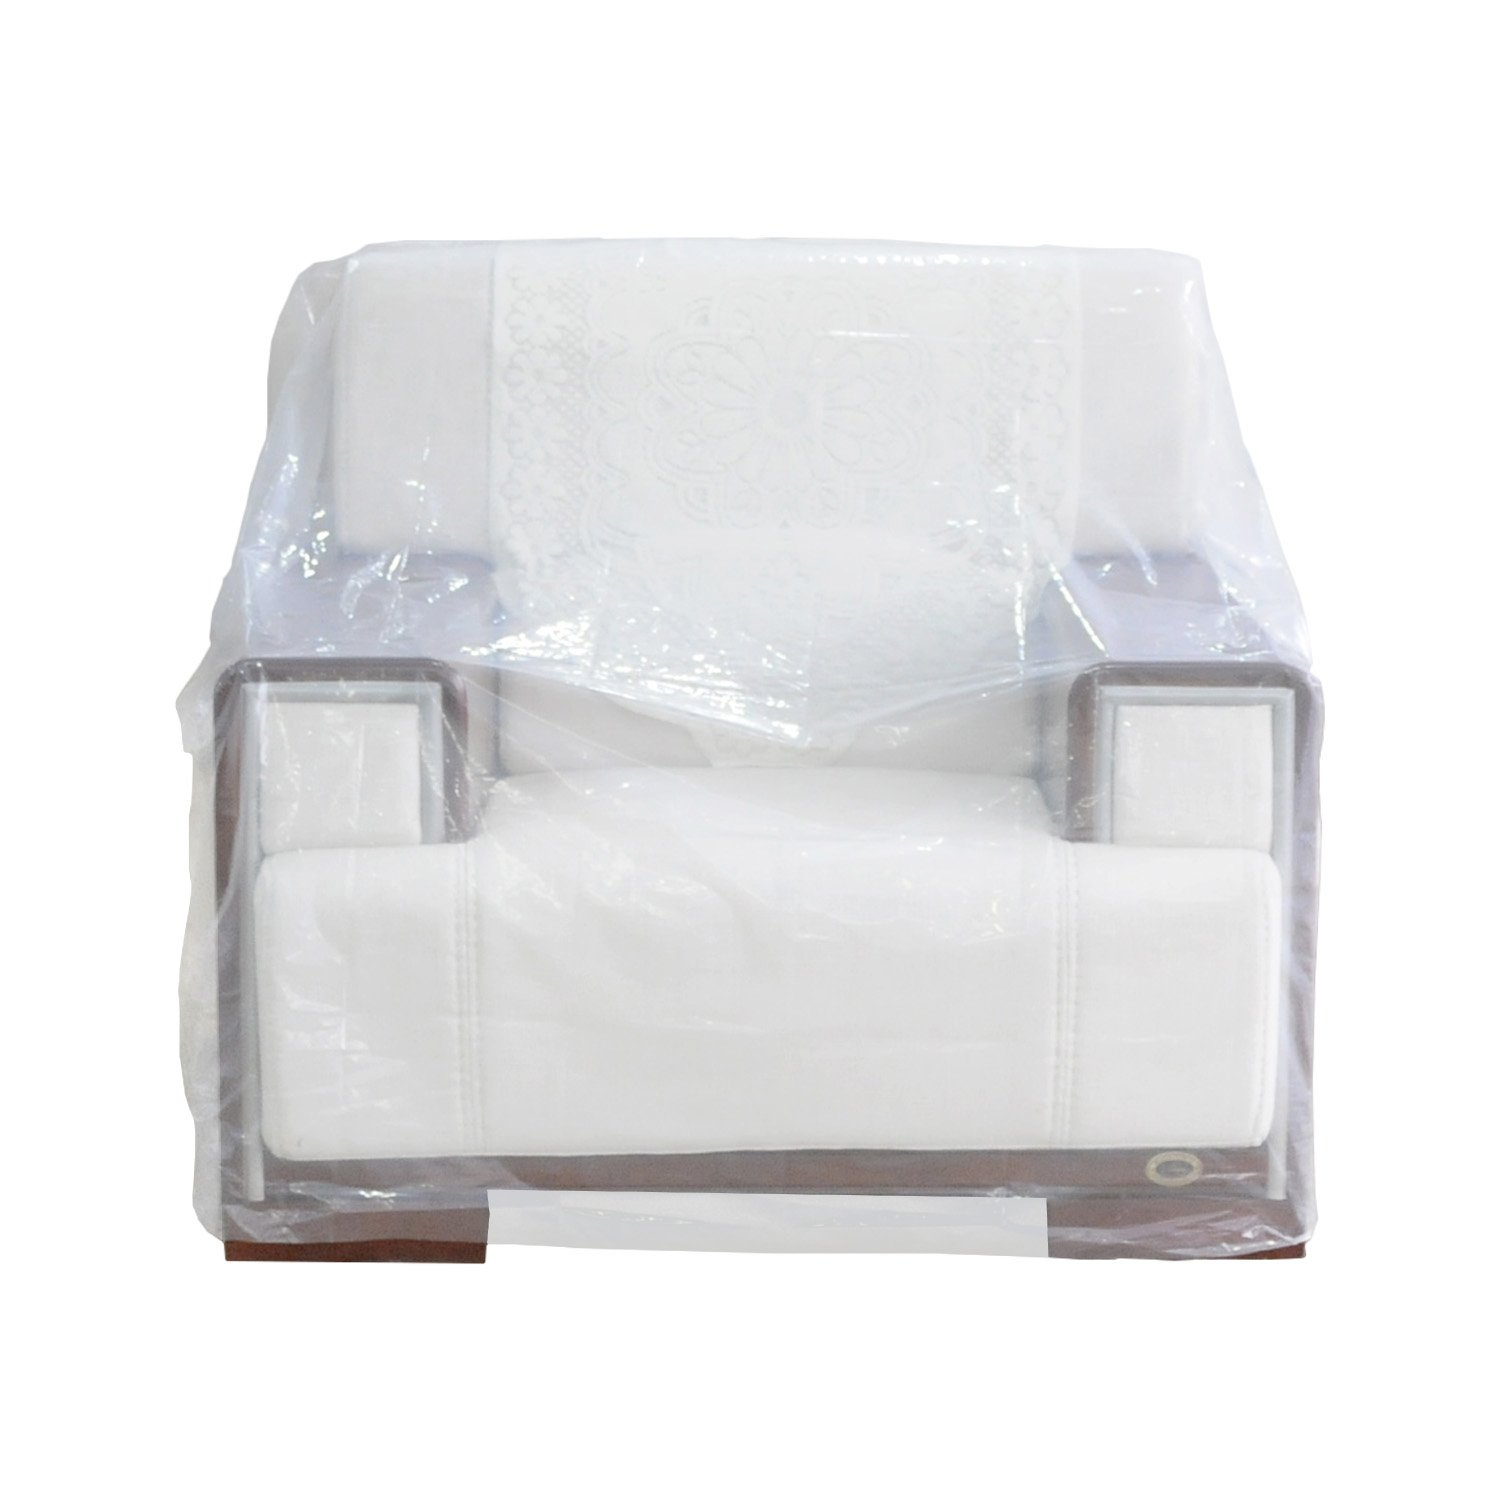 Incredible Topsoon Plastic Chair Cover Sofa Cover For Storage Or Protection 46 Inches X 76 Inches Pack Of 2 Pdpeps Interior Chair Design Pdpepsorg